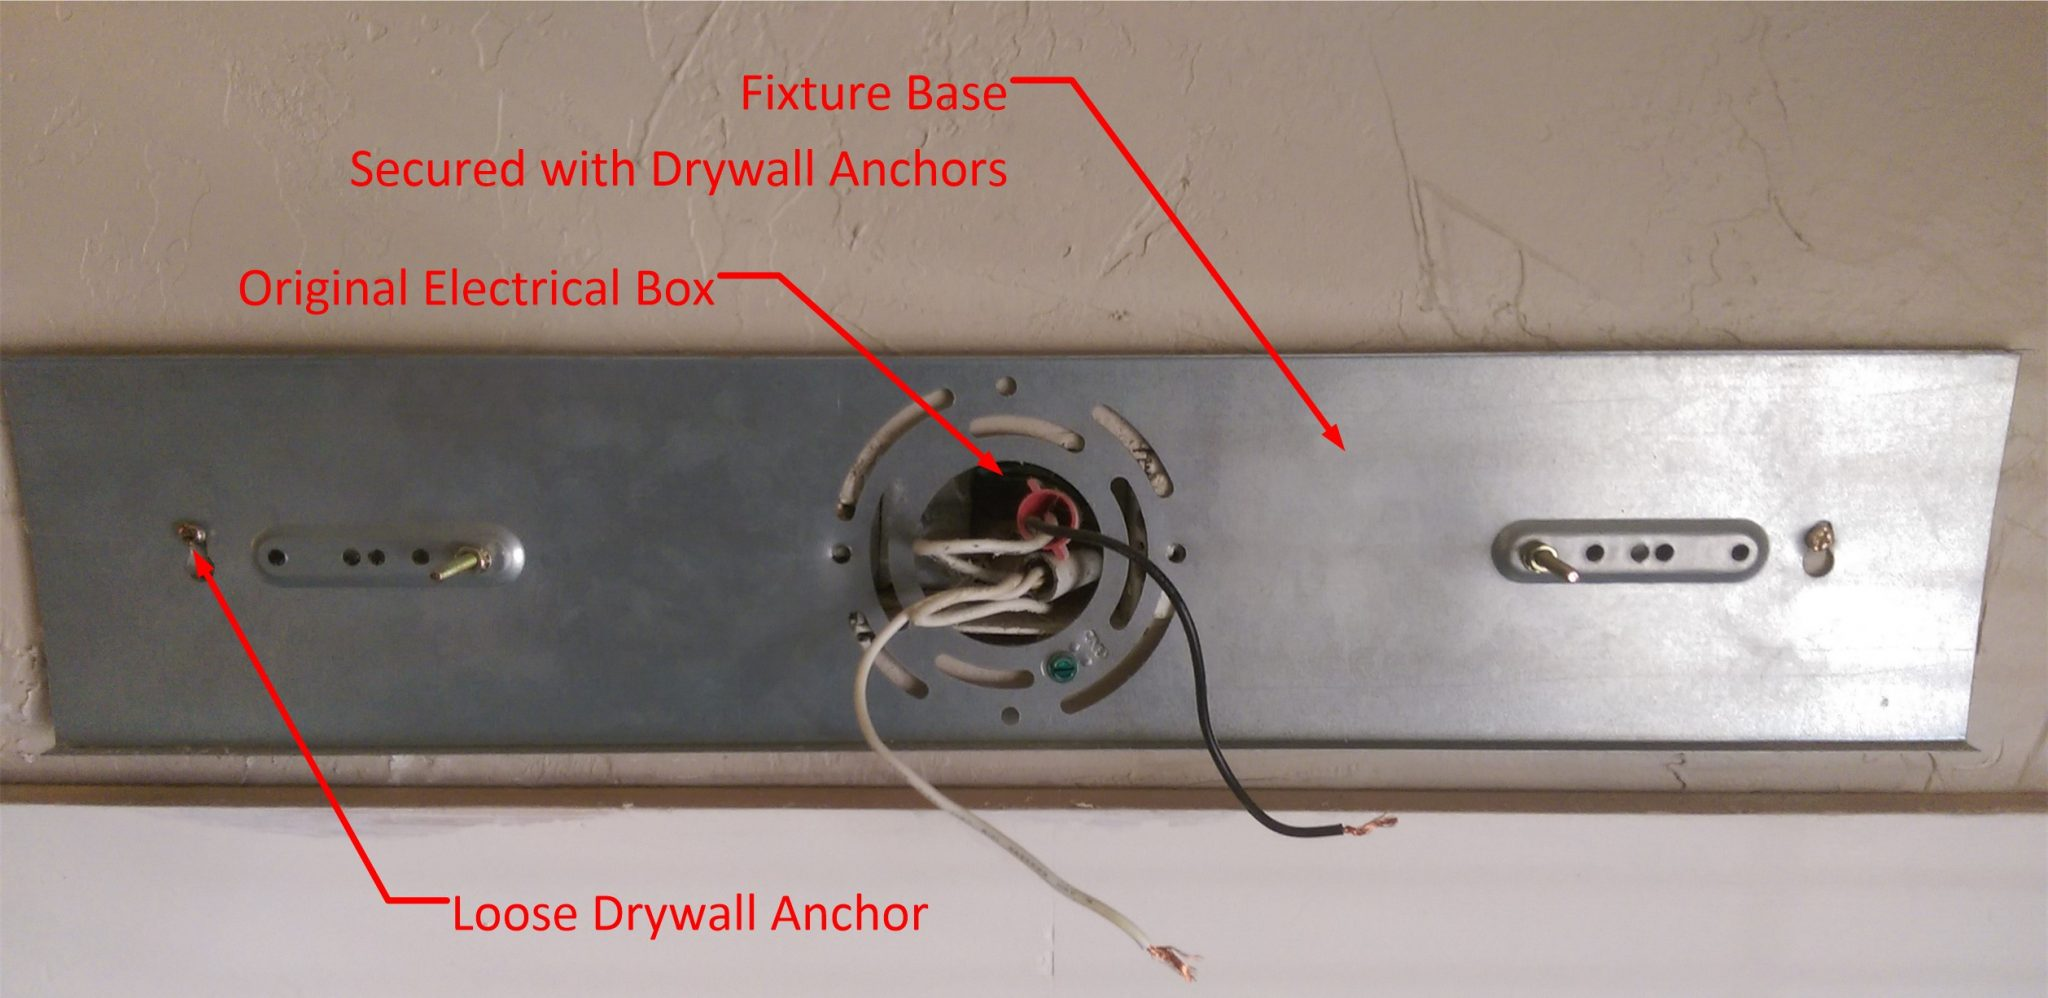 Wiring A Vanity Fixture Diagram Schematics Home Red Black White Fix Loose Bathroom Light Homediygeek Fluorescent With And Wires